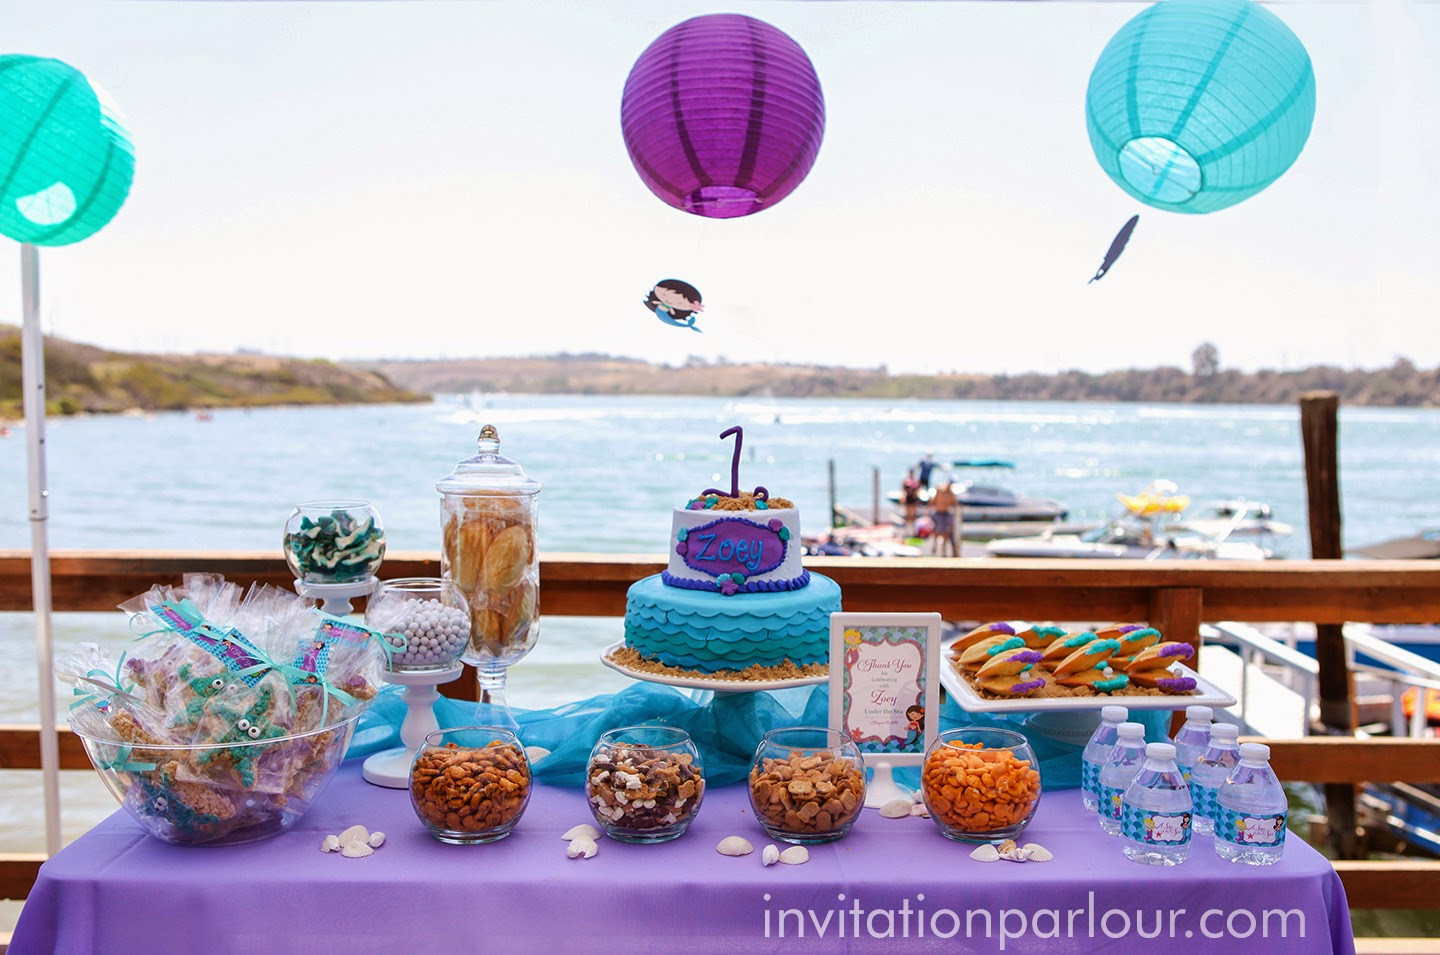 Best ideas about Birthday Party San Diego . Save or Pin Invitation Parlour Mermaid Under the Sea Birthday Party Now.